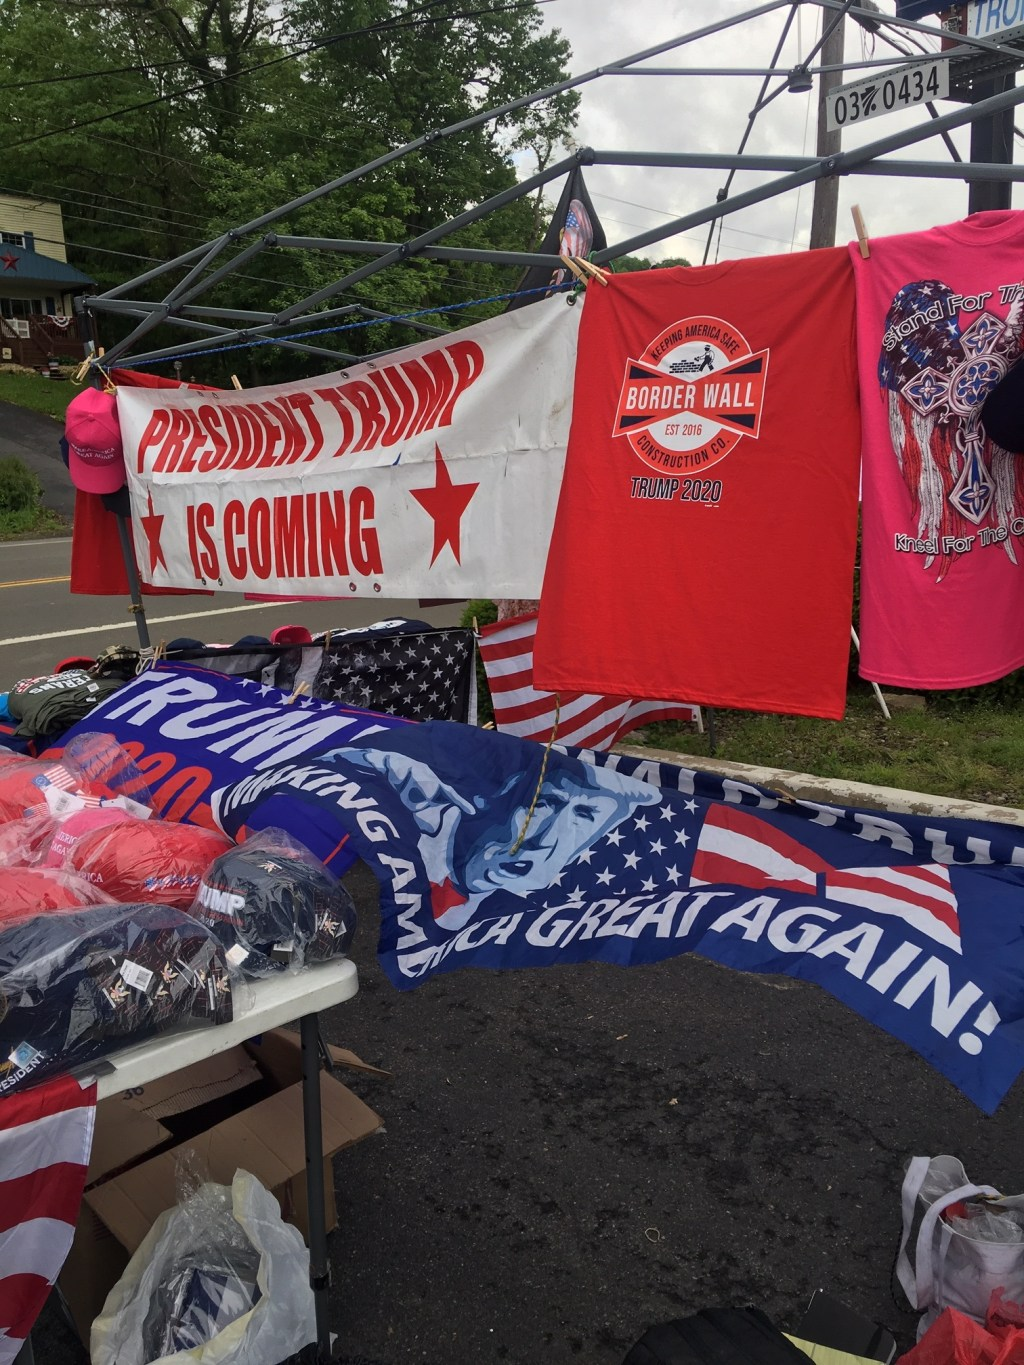 Terri Bruner's pro-Trump merchandise stand greeted passersby in Williamsport ahead of President Trump's Monday evening rally. (John T. Bennett/CQ Roll Call)